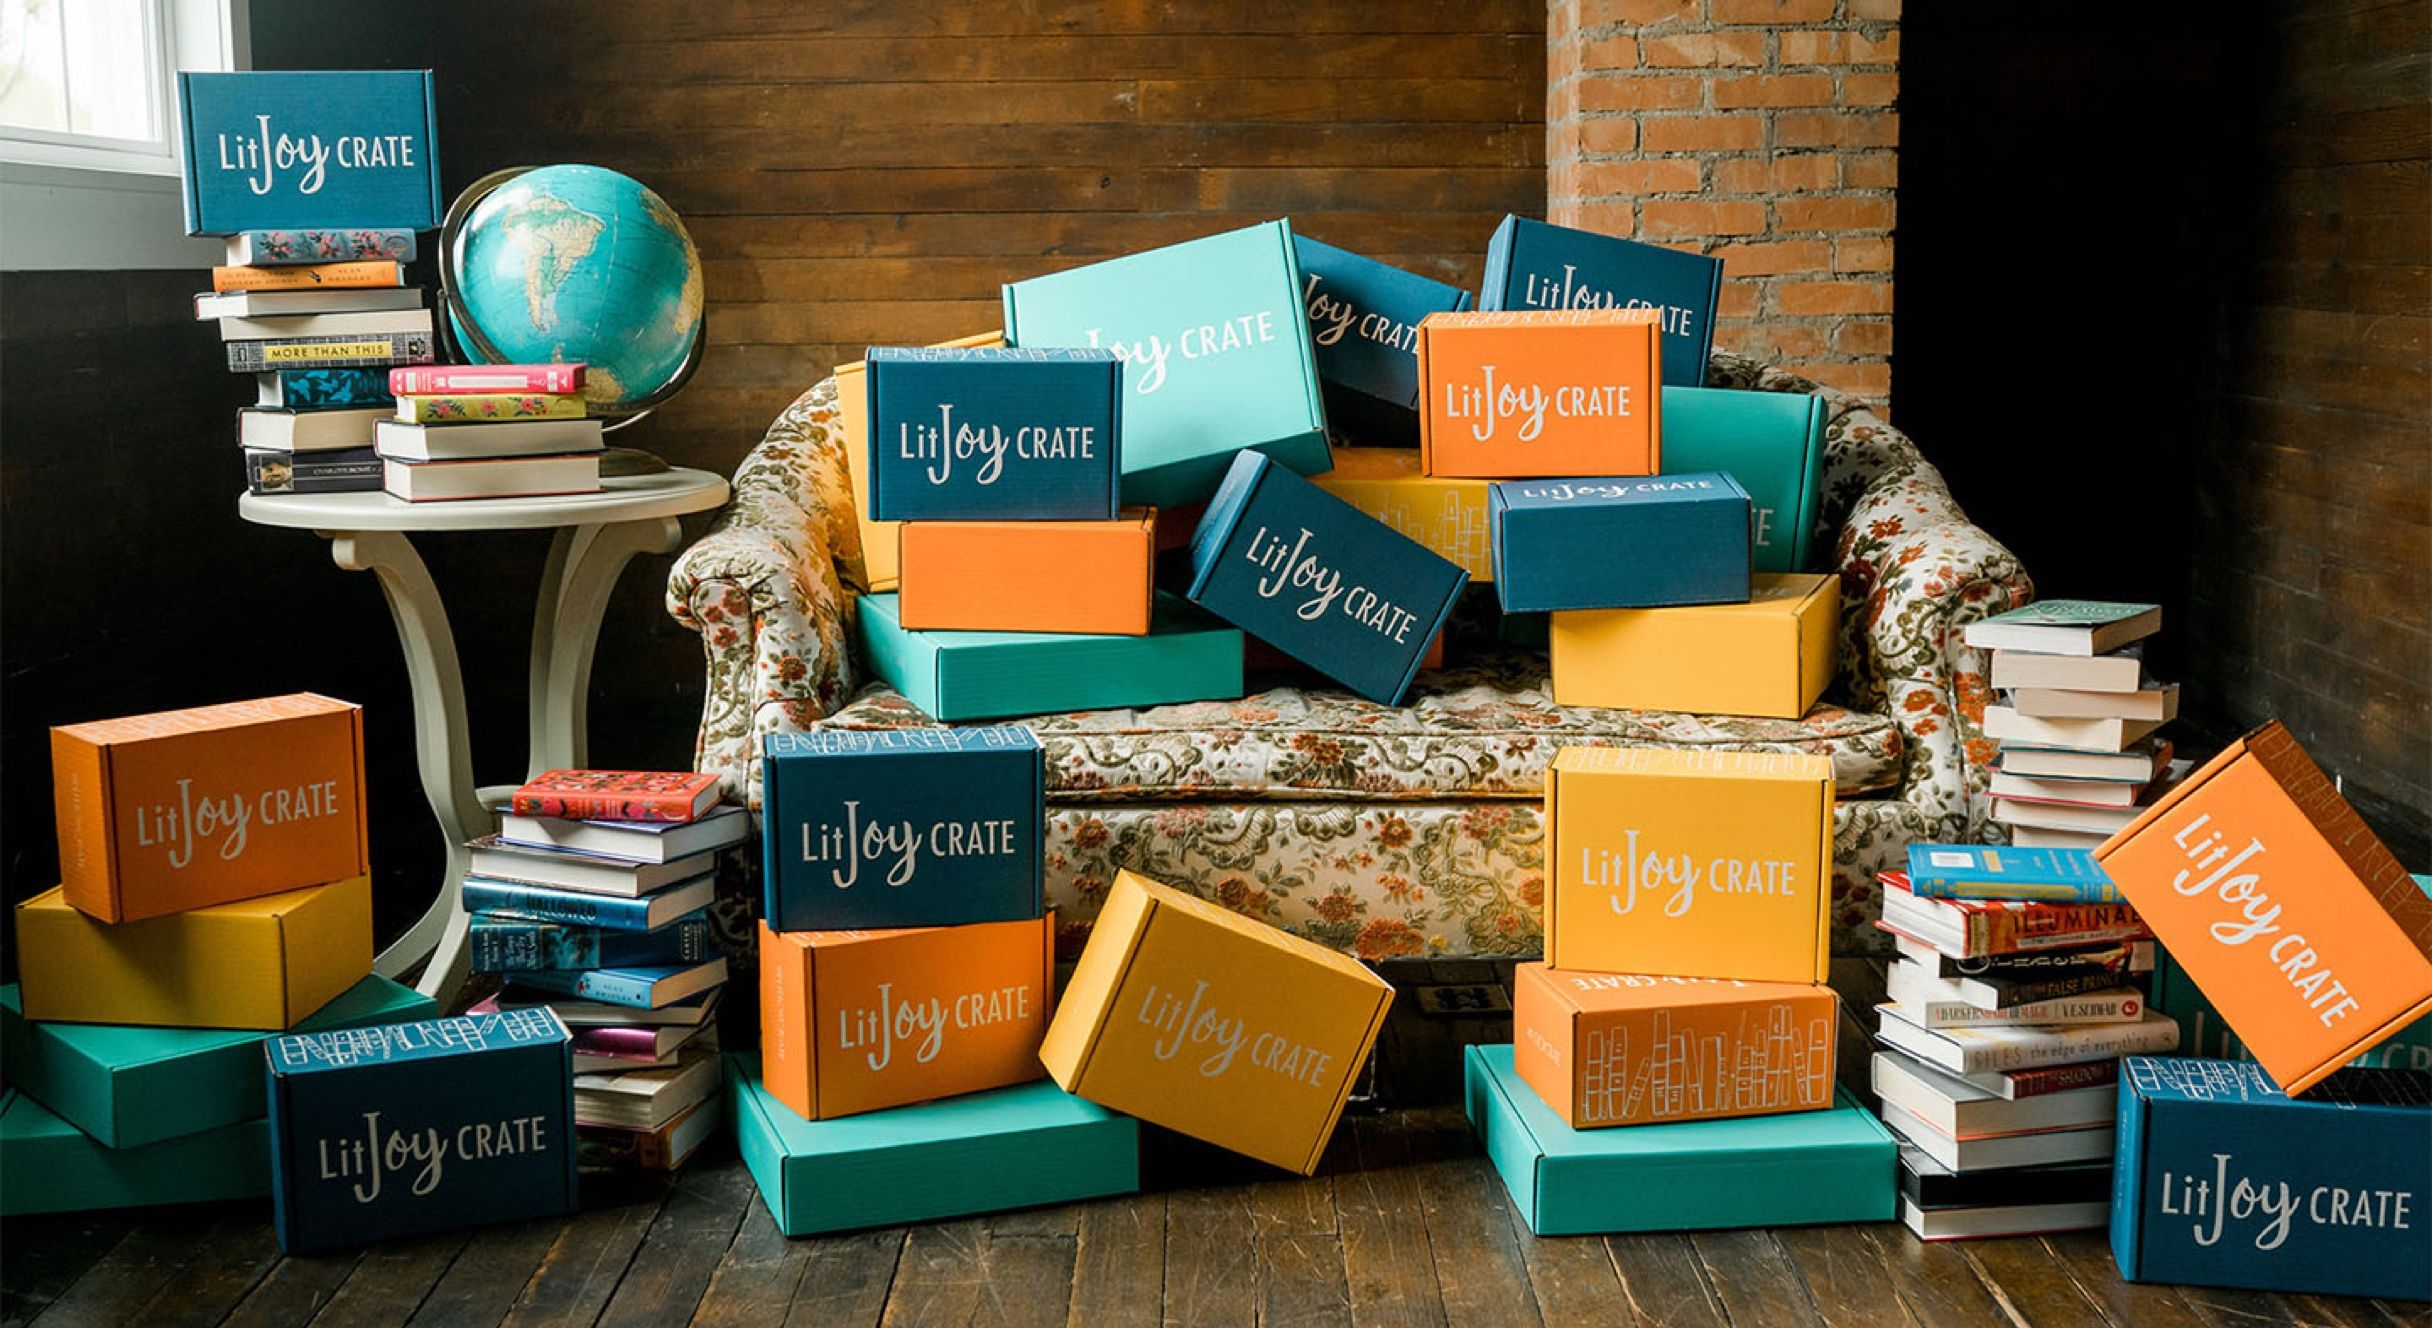 Couch, table, and floor covered with a LitJoy Crates